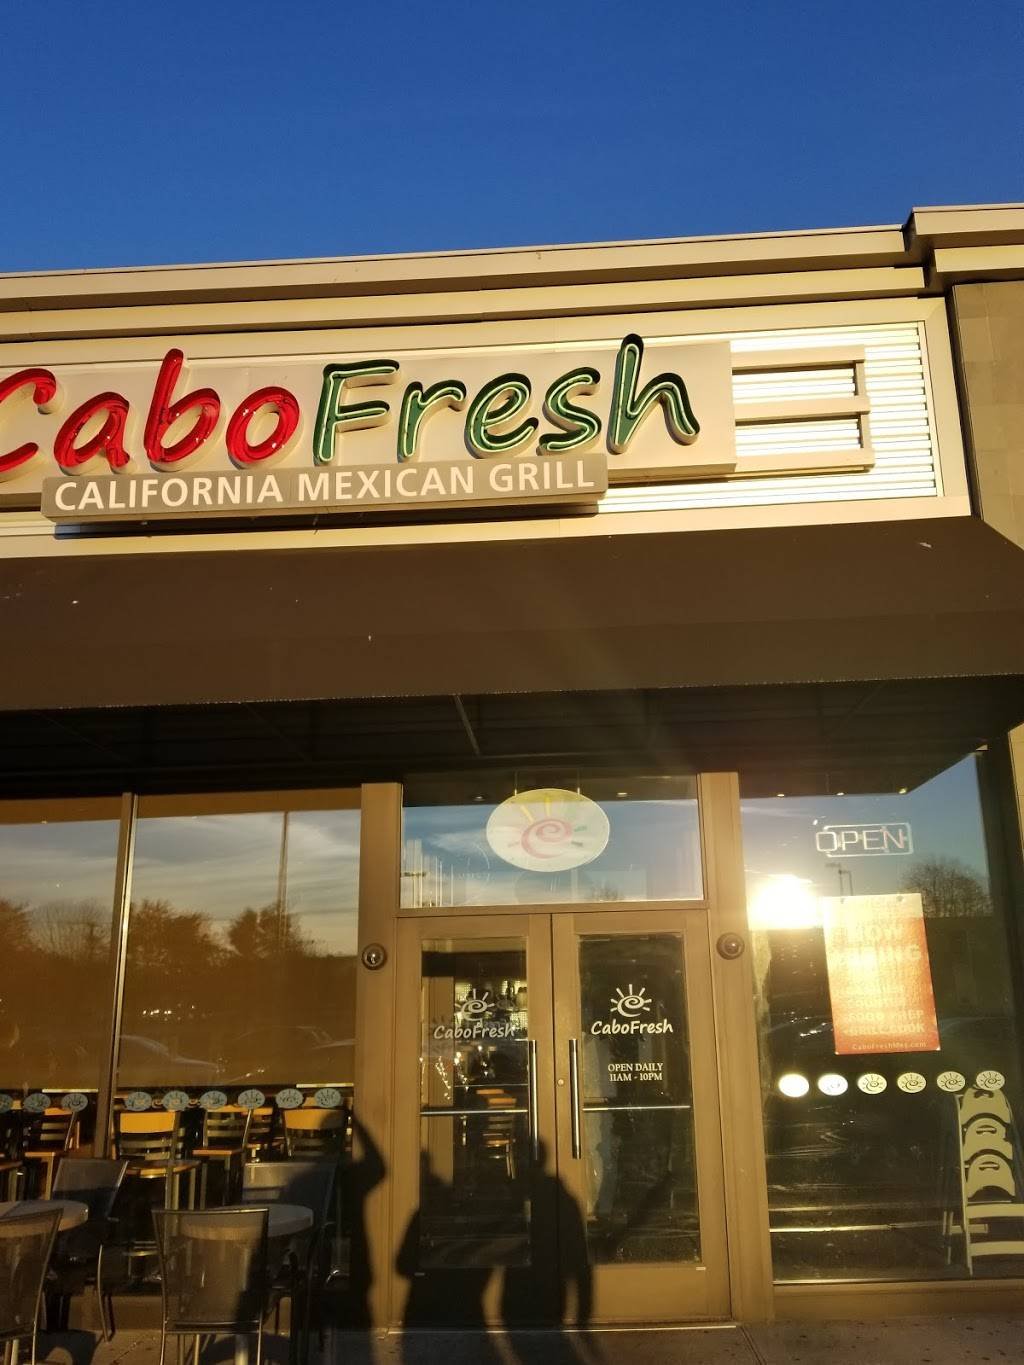 Cabo Fresh Mexican Grill   restaurant   5026 Jericho Turnpike, Commack, NY 11725, USA   6315432226 OR +1 631-543-2226